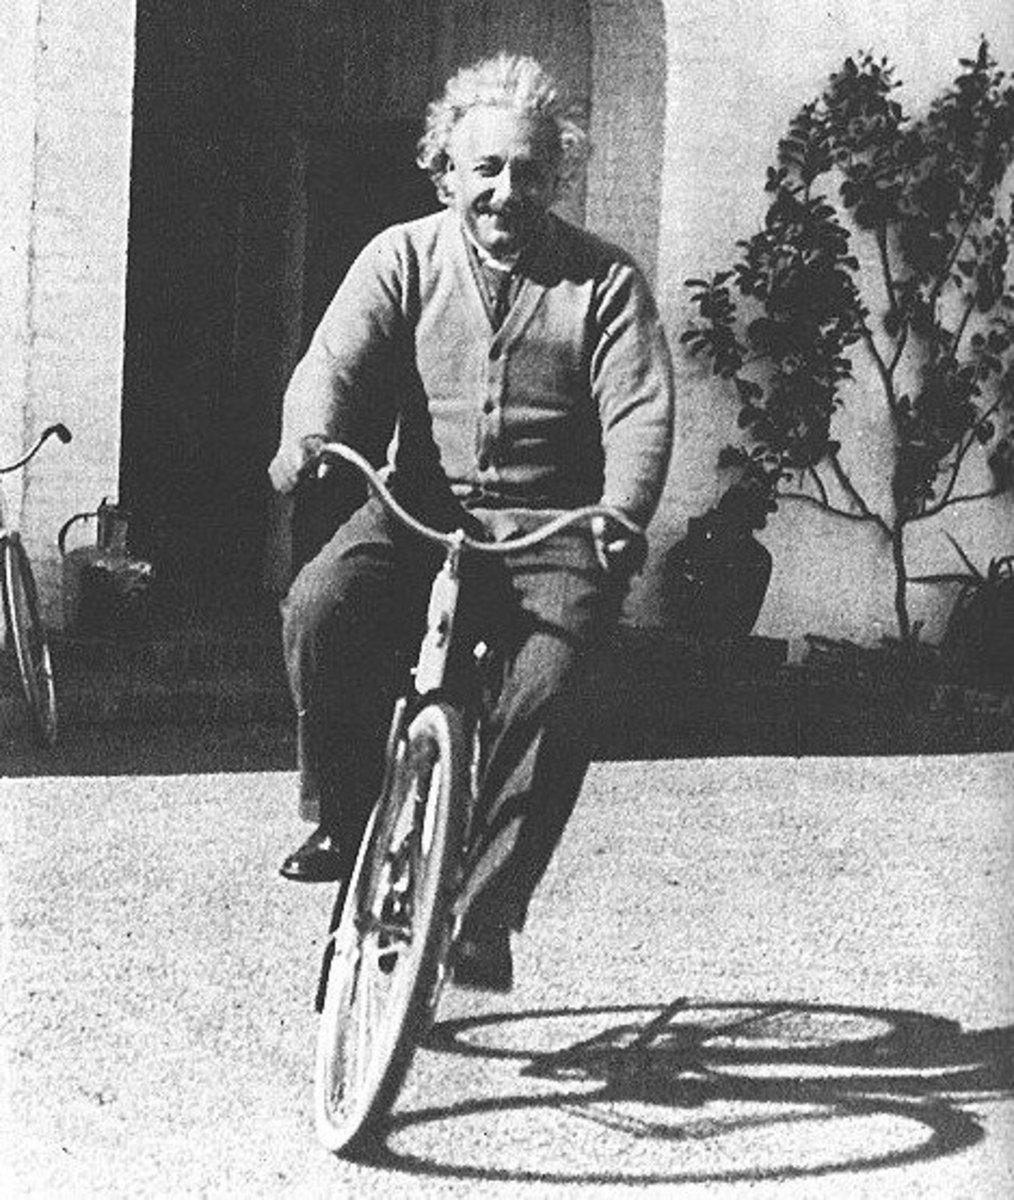 Life is like a bicycle, to keep your balance your must keep on moving. - Einstein letter to his son.